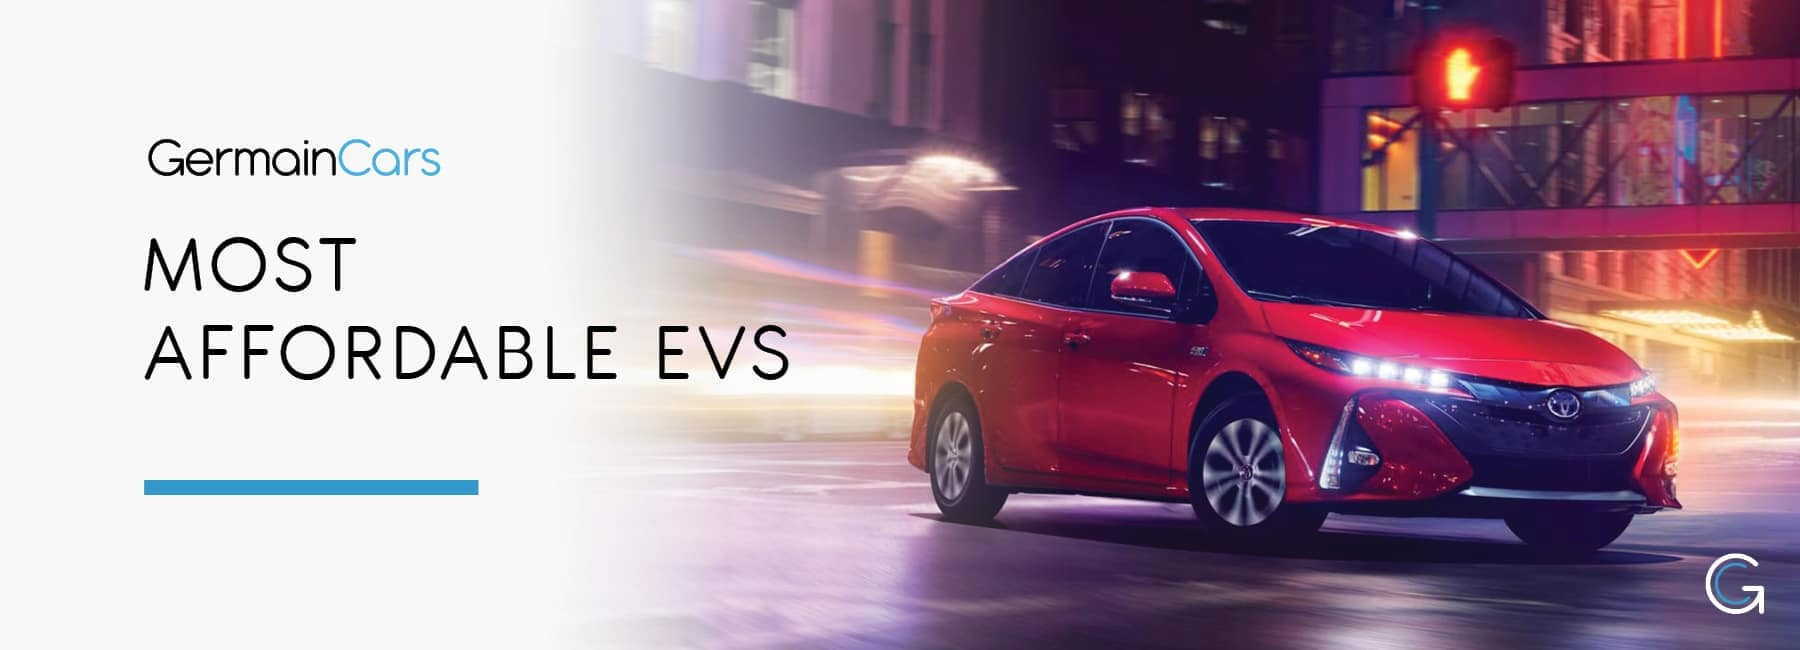 Most Affordable Electric Vehicles